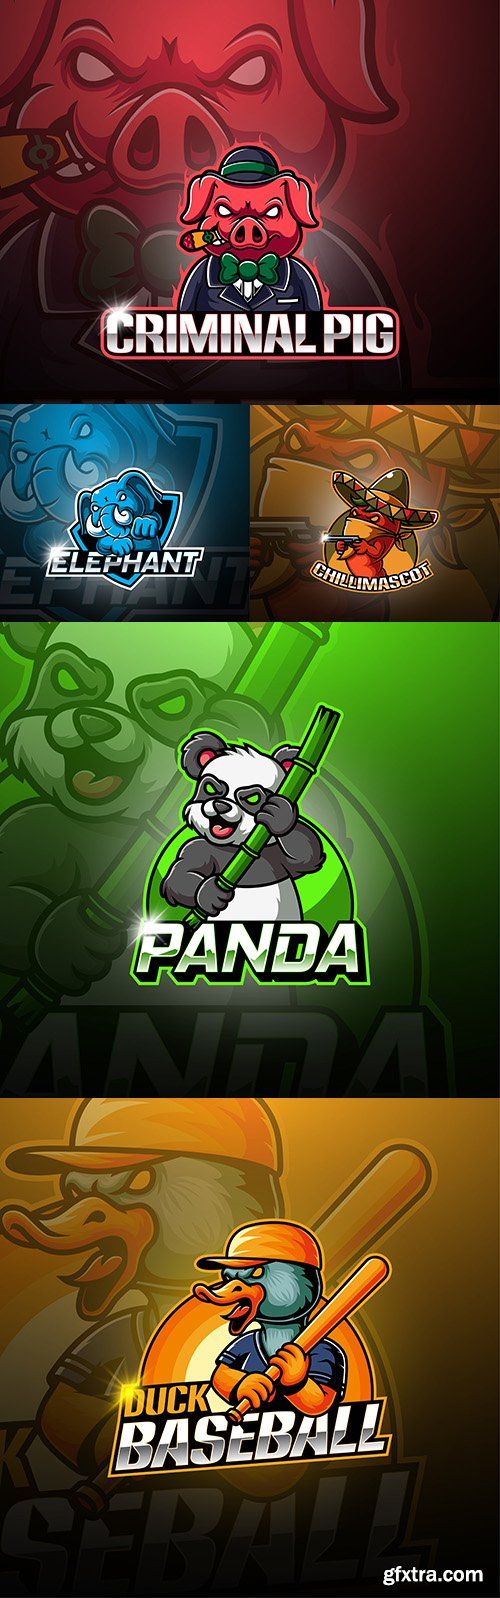 Emblem gaming mascot design esport illustration 5